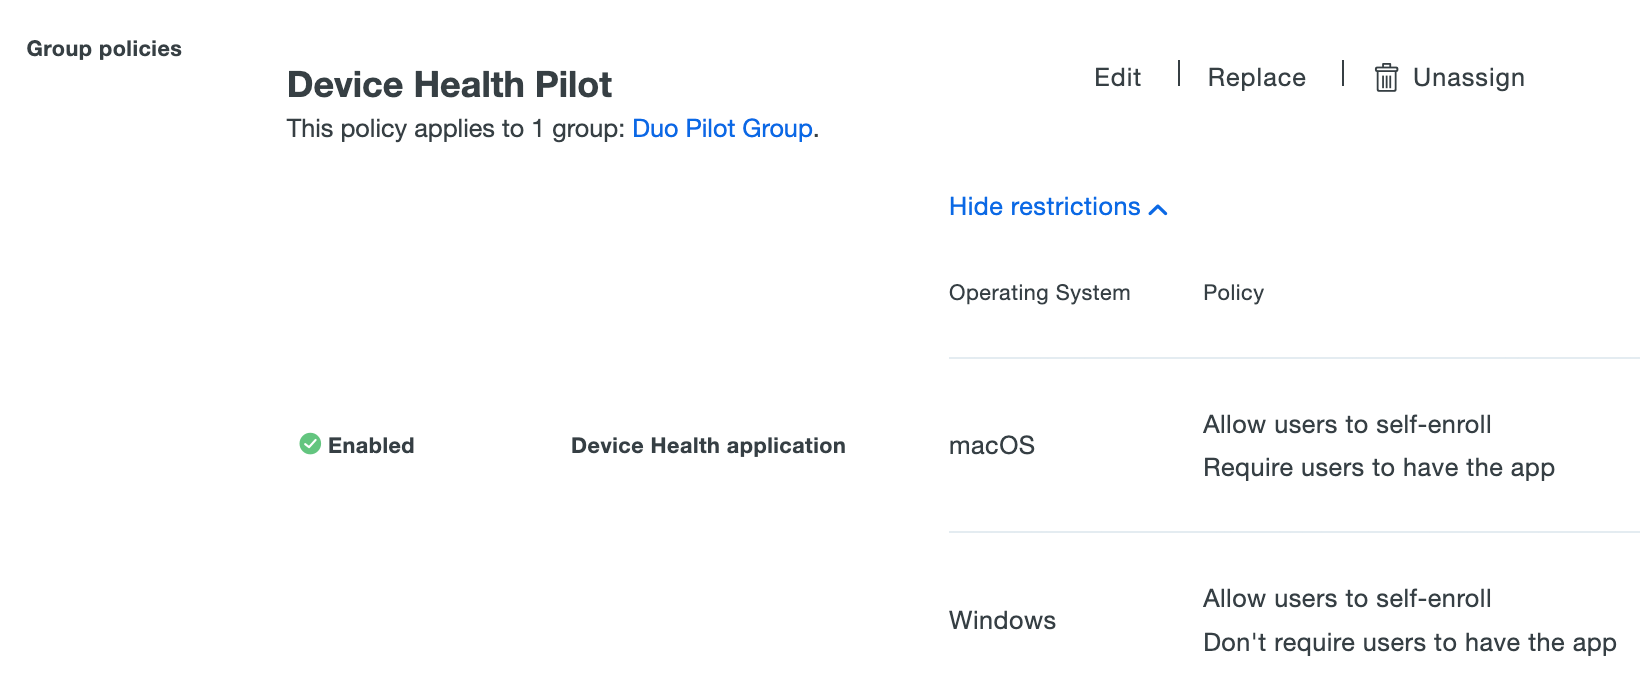 Applied Device Health Application Group Policy